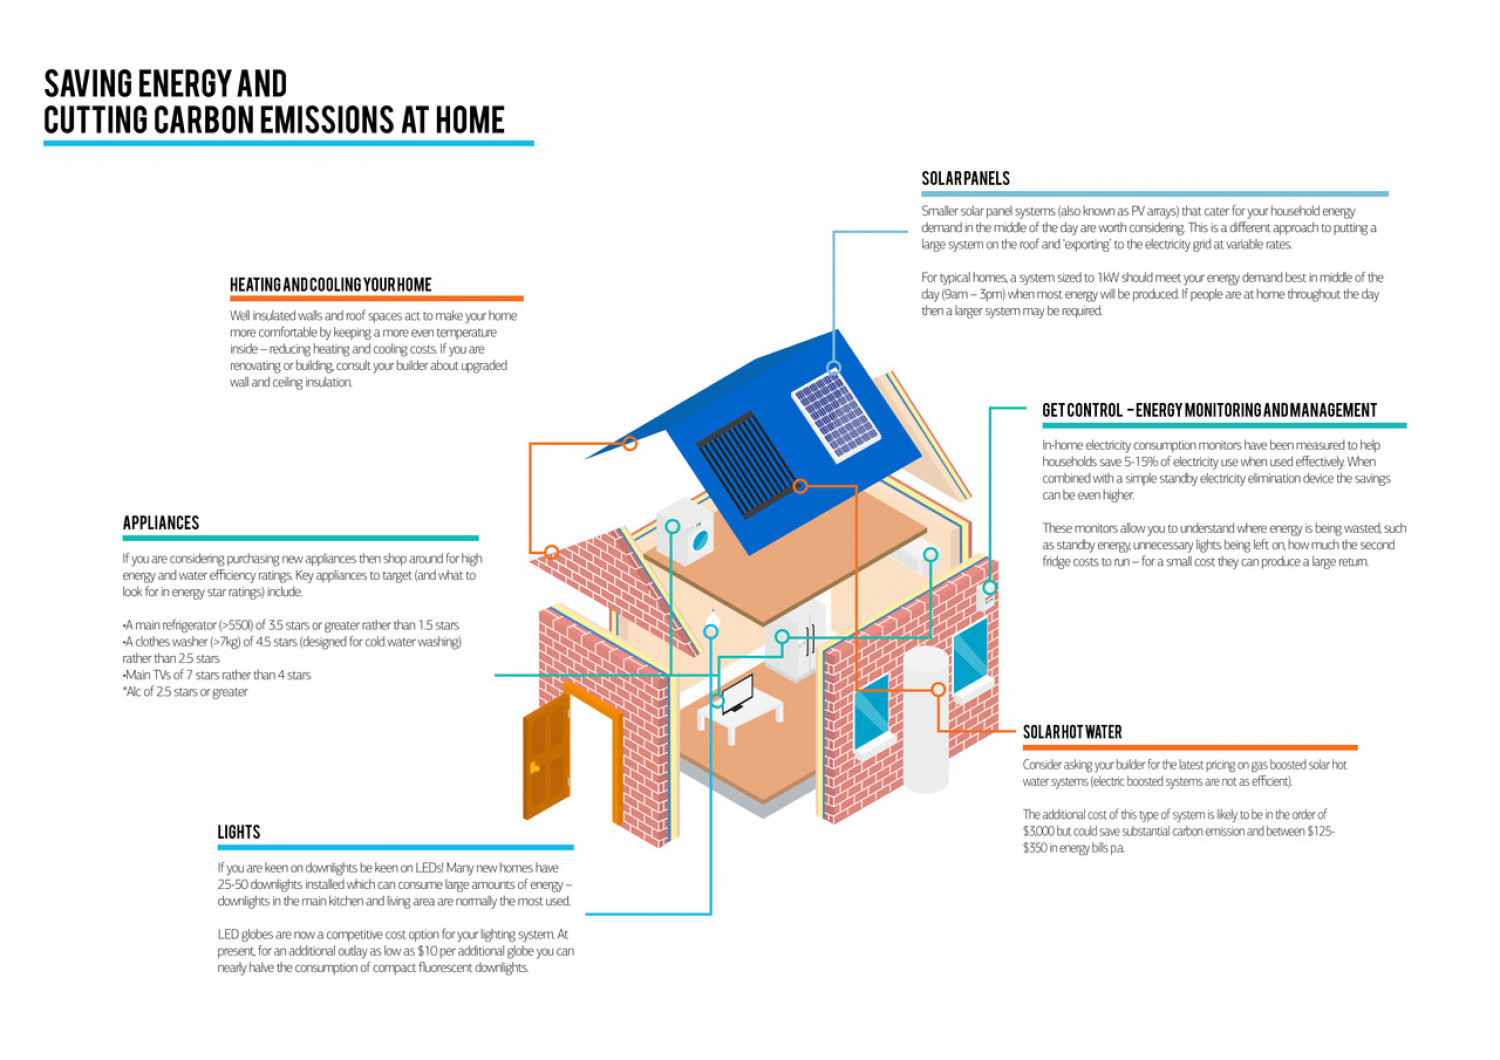 Saving Energy and Cutting Carbon Emissions at Home Infographic